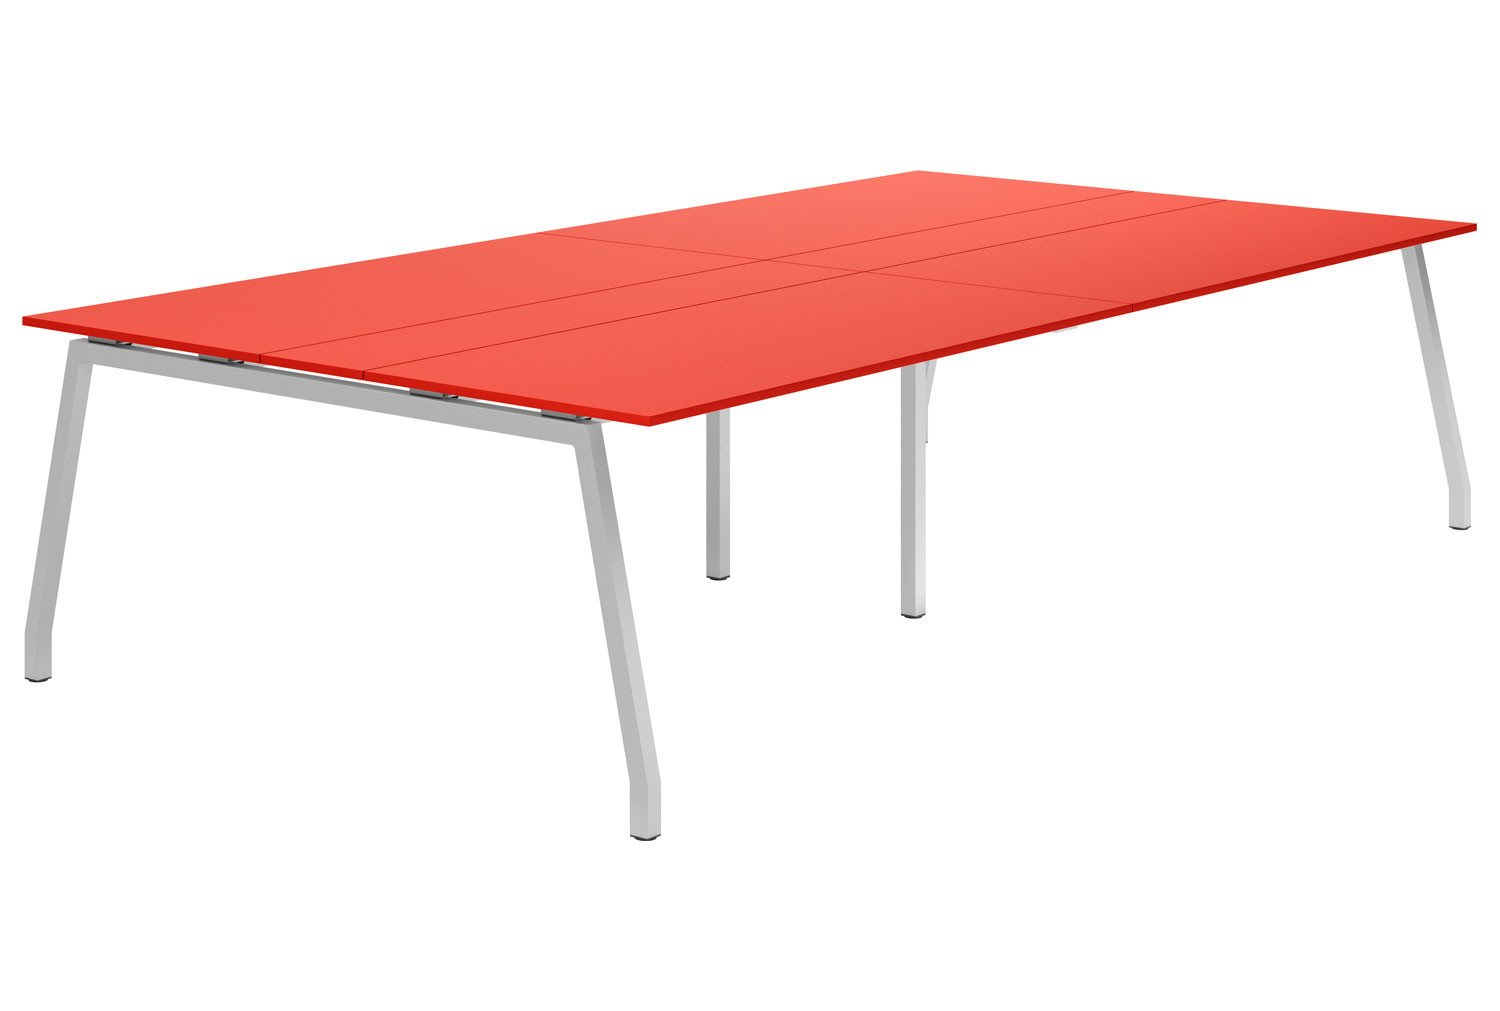 Campos A-Frame 10-12 Person Meeting Table (Red)